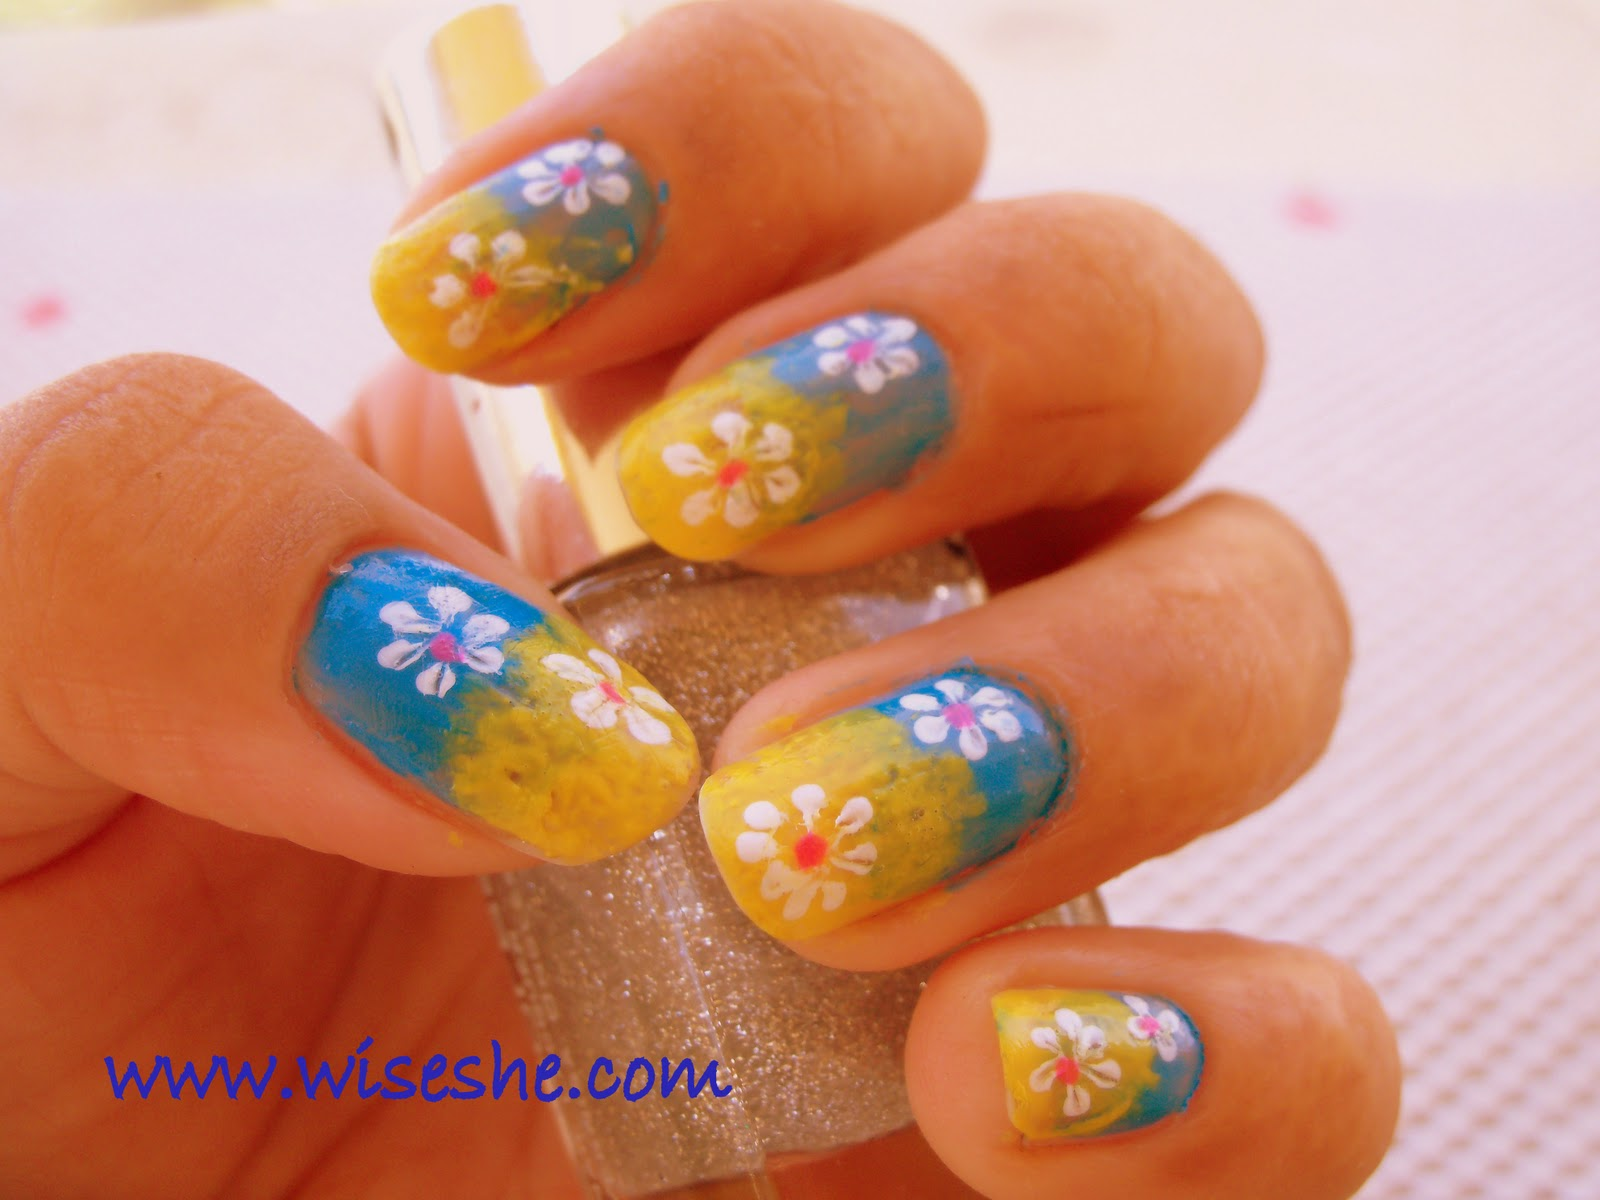 The Charming Cute easy nail designs glittery Image